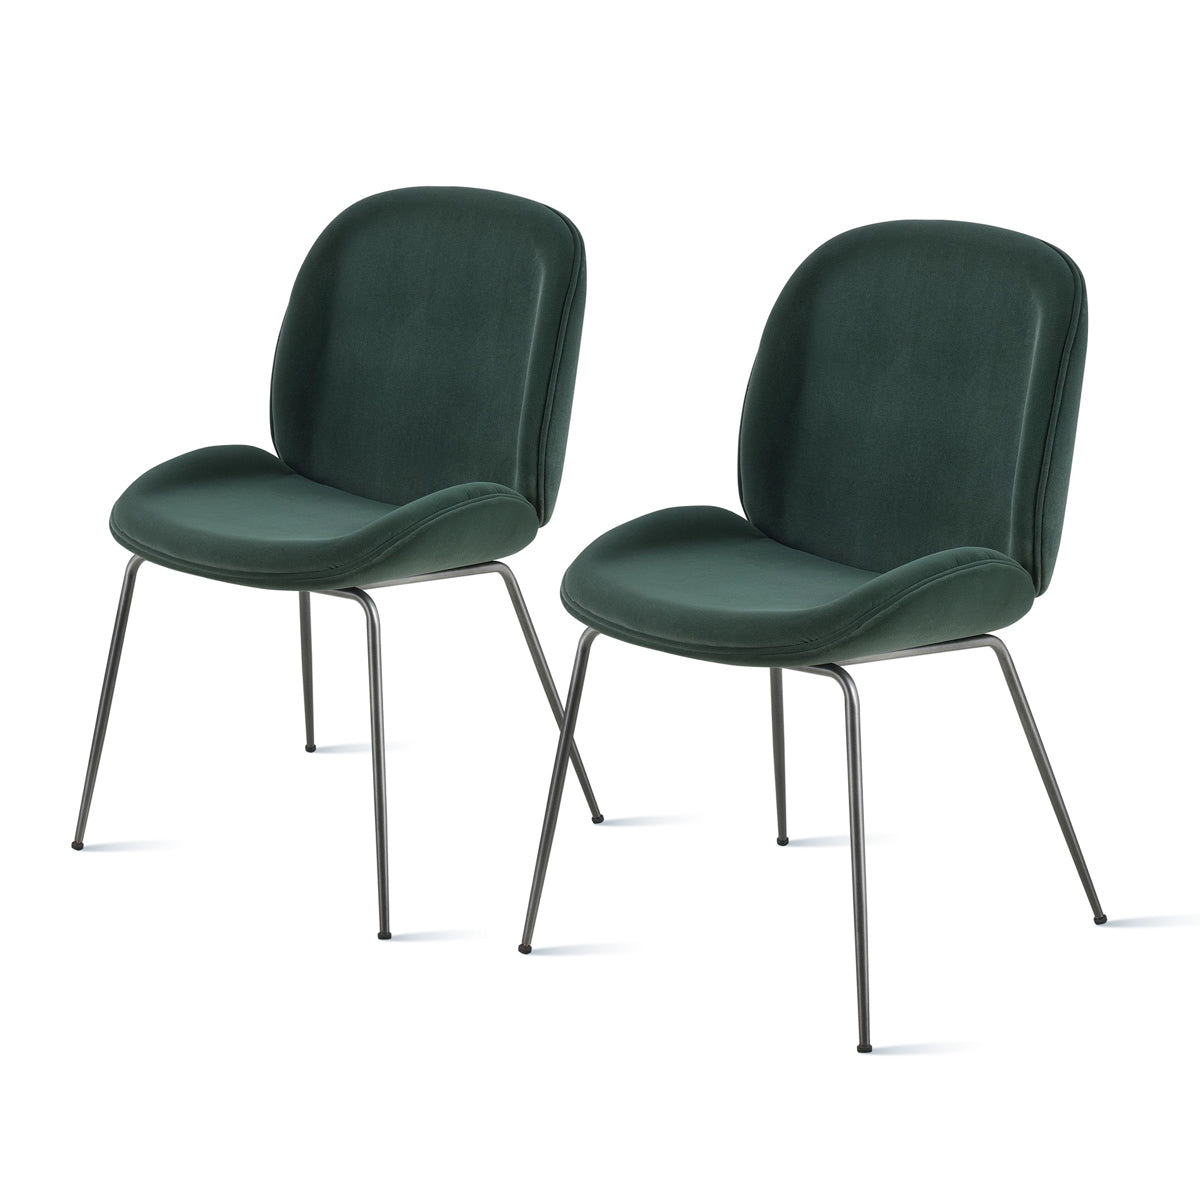 Lucy Velvet Fabric Chair - Set of 2 by New Pacific Direct - 9300051